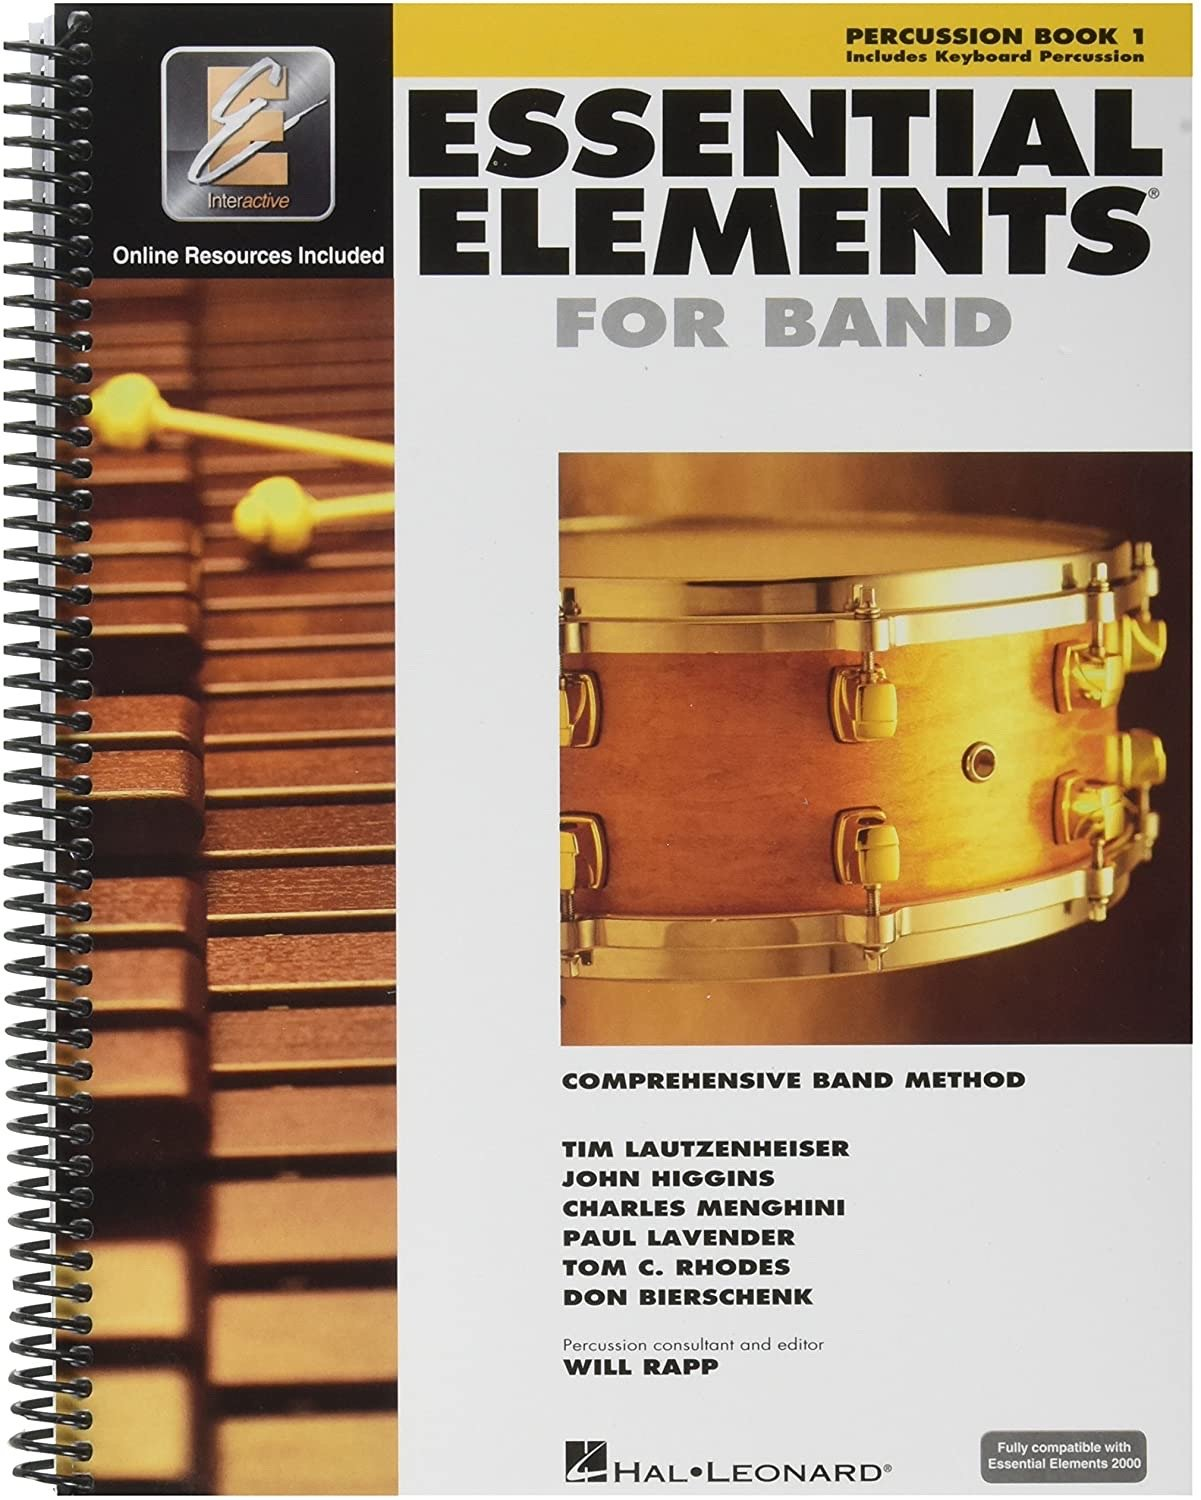 Essential Elements for Band: Book 1 - Percussion